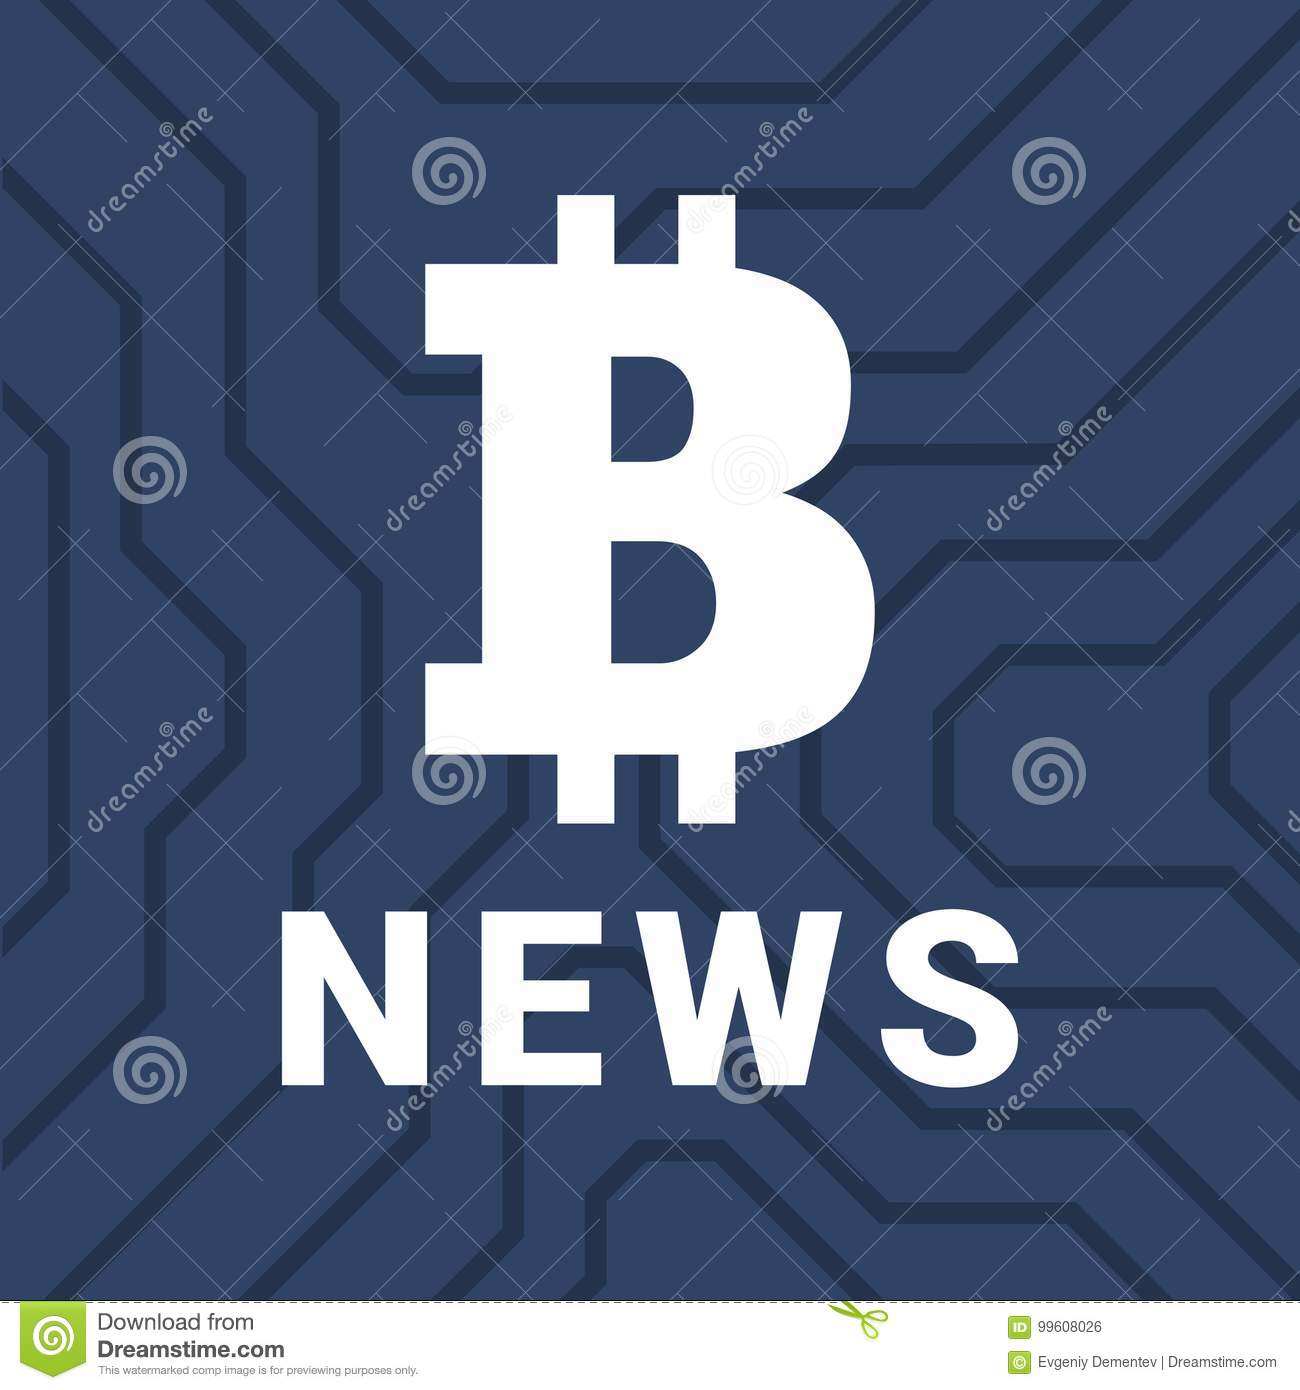 big news in cryptocurrency